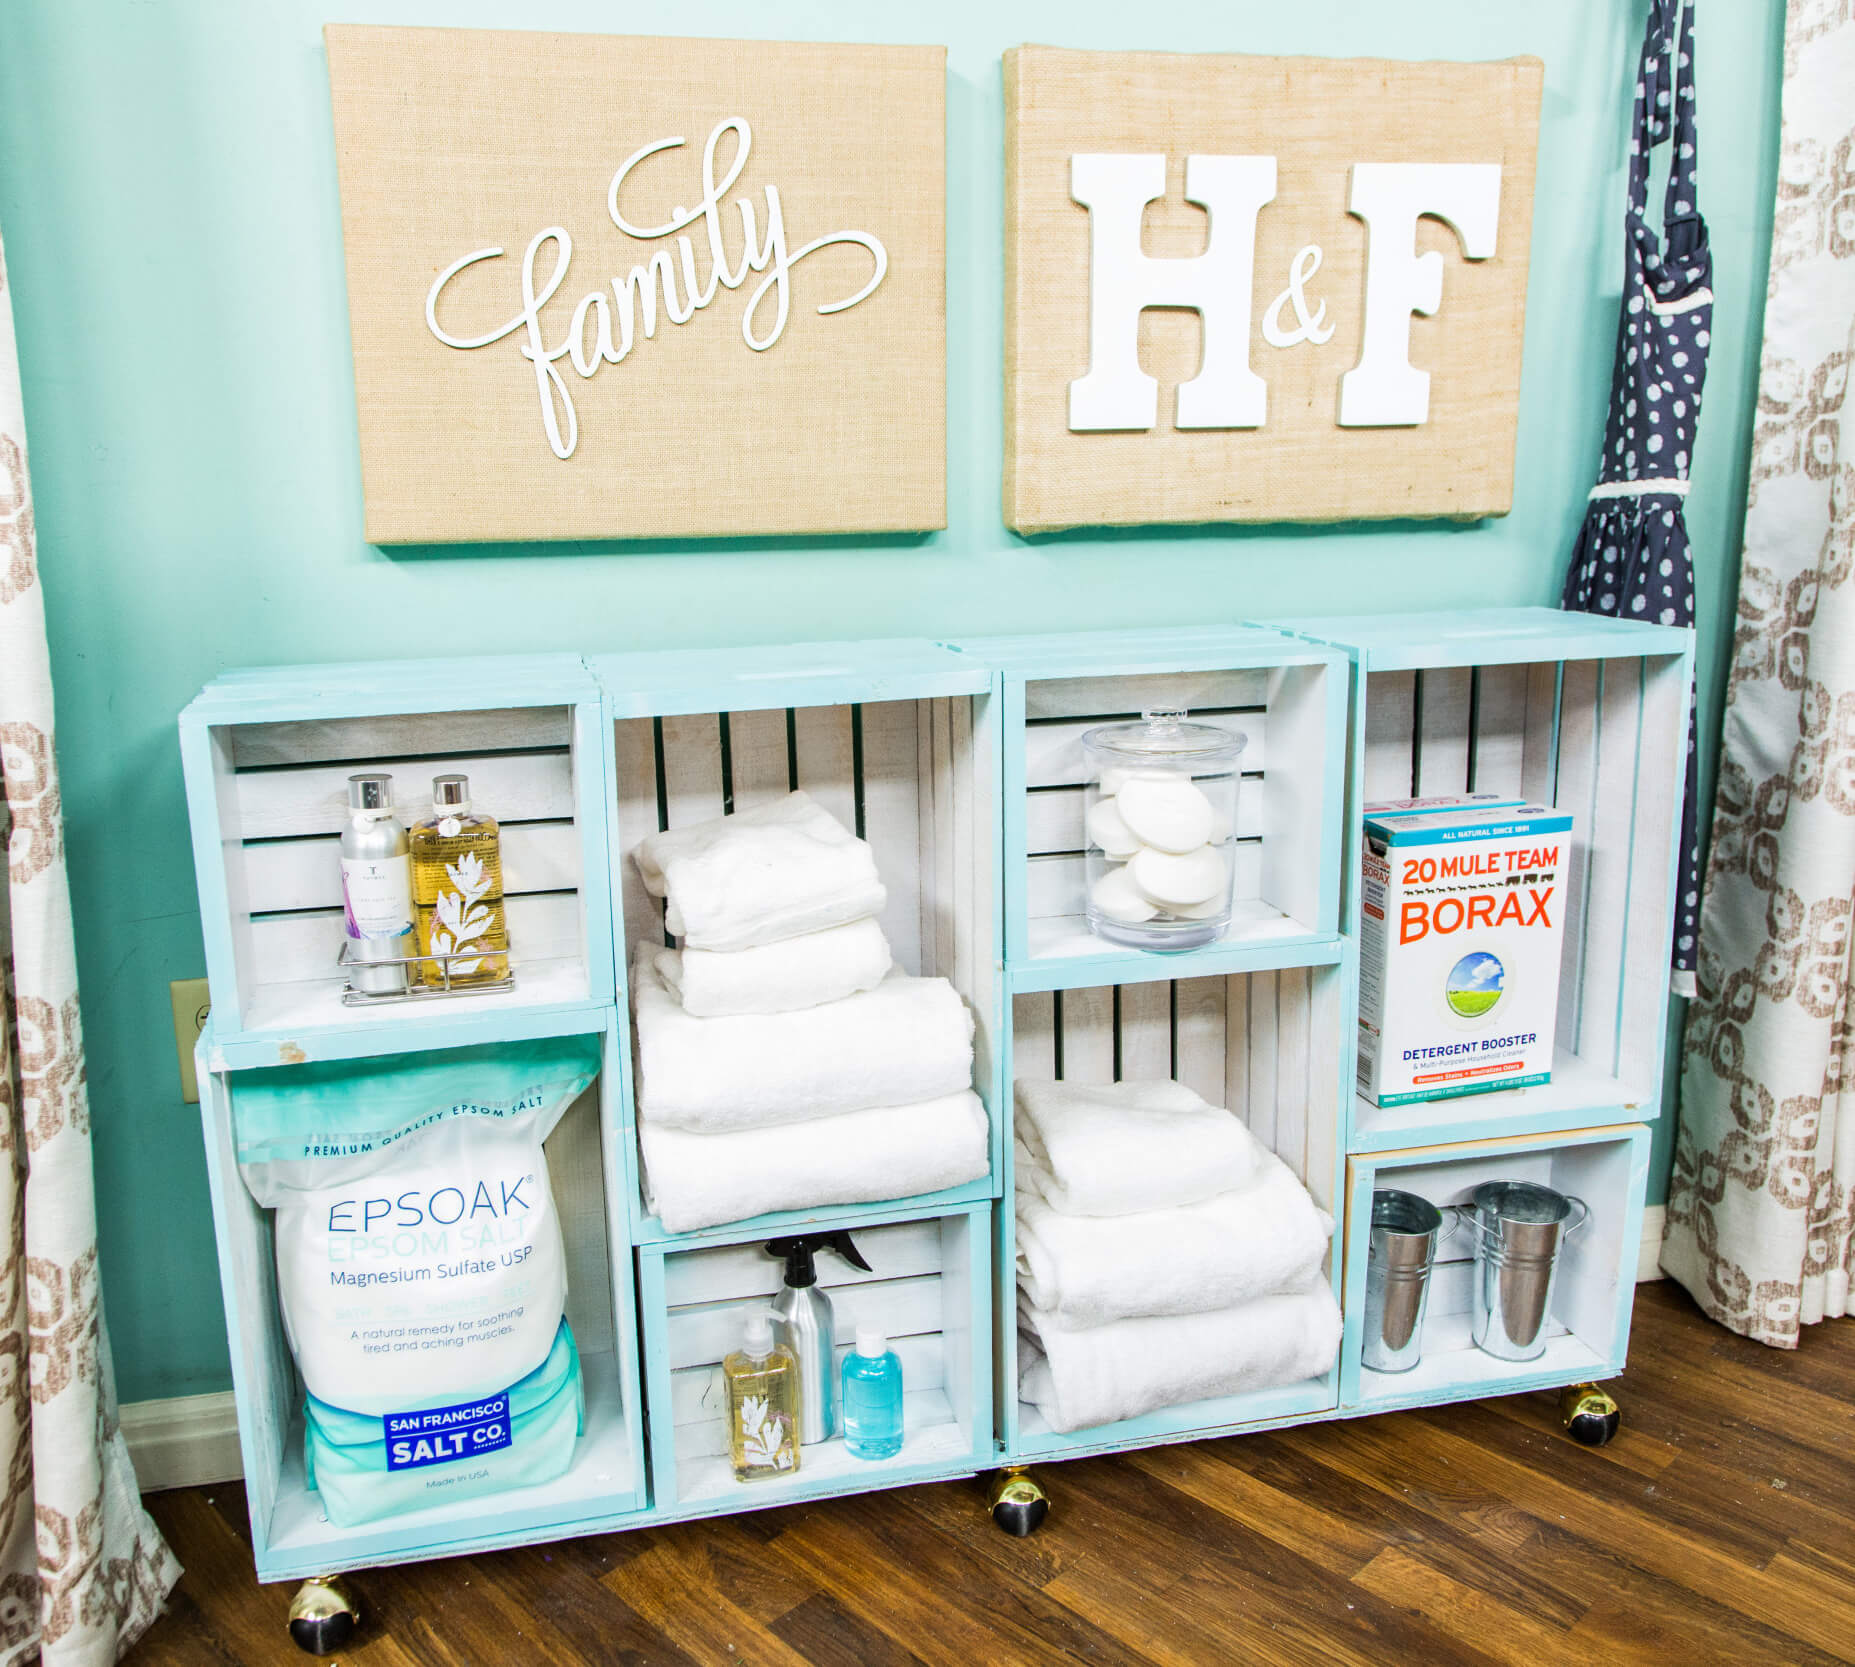 Whitewashed Storage Shelving Unit from Wooden Crates